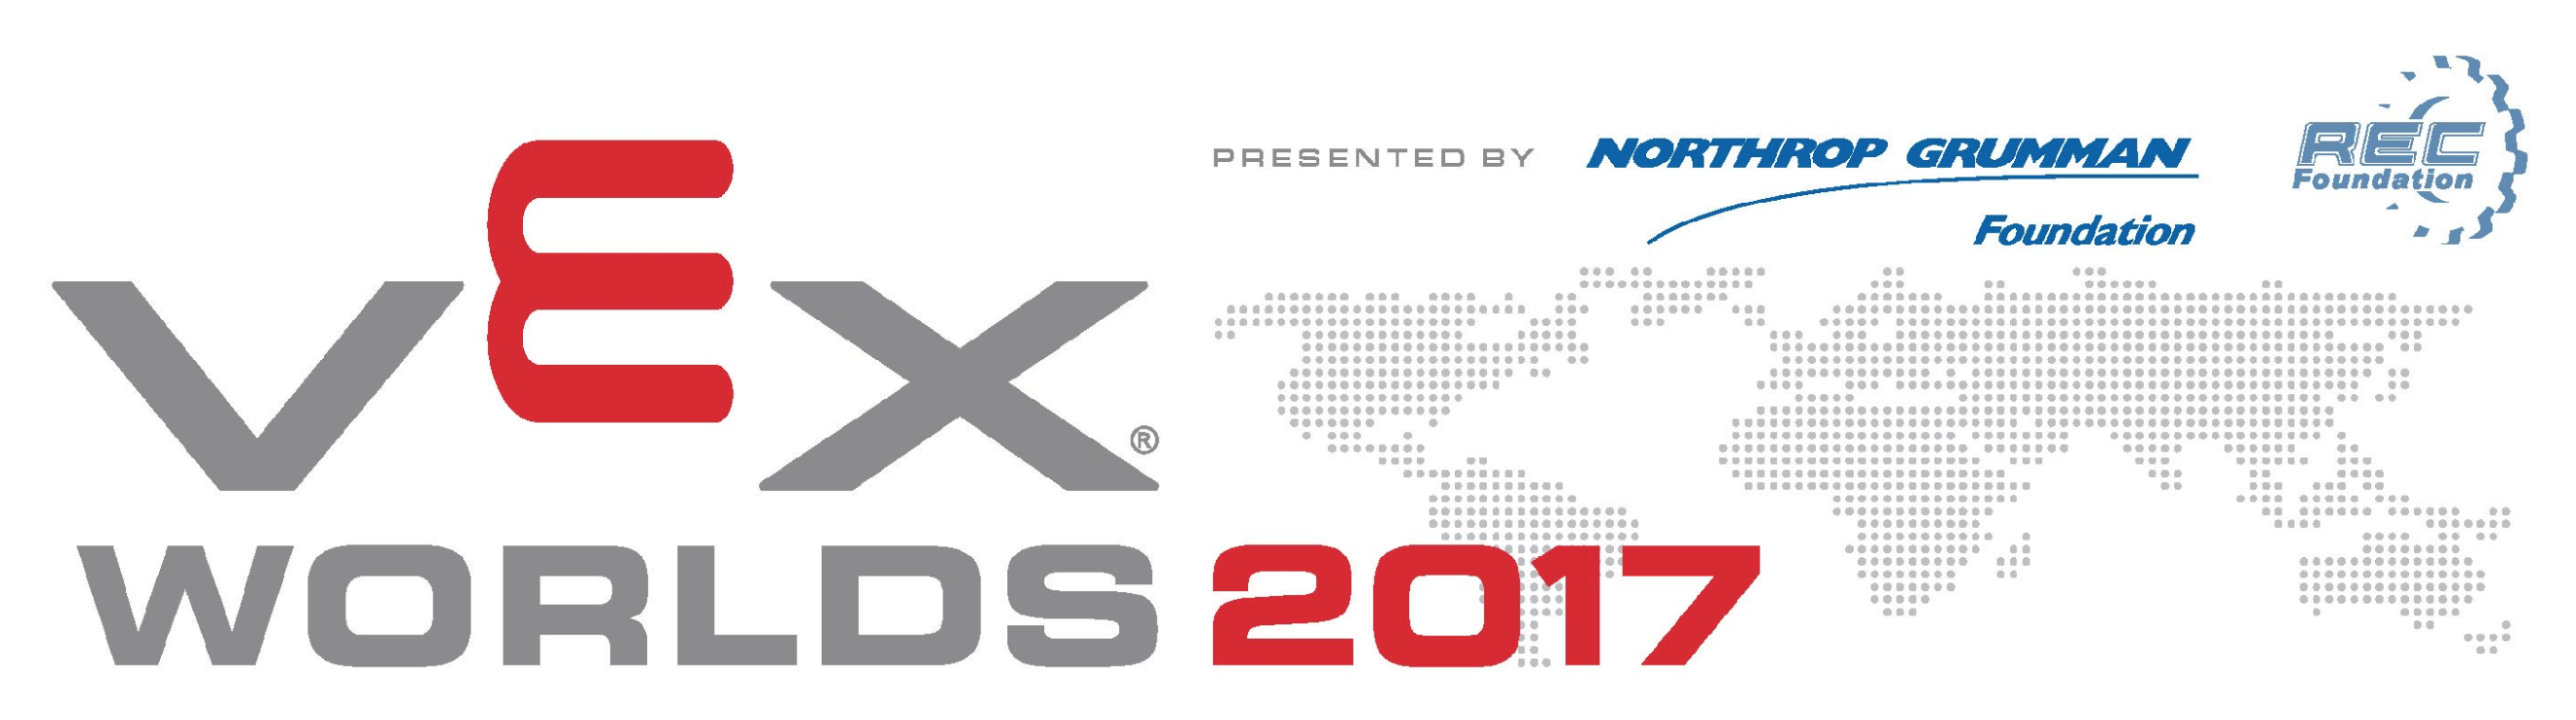 VEX Worlds 2017, presented by the Northrop Grumman Foundation, brings  together top robotics teams in the VEX IQ Challenge, VEX Robotics  Competition, PlusPng.com  - Vex PNG